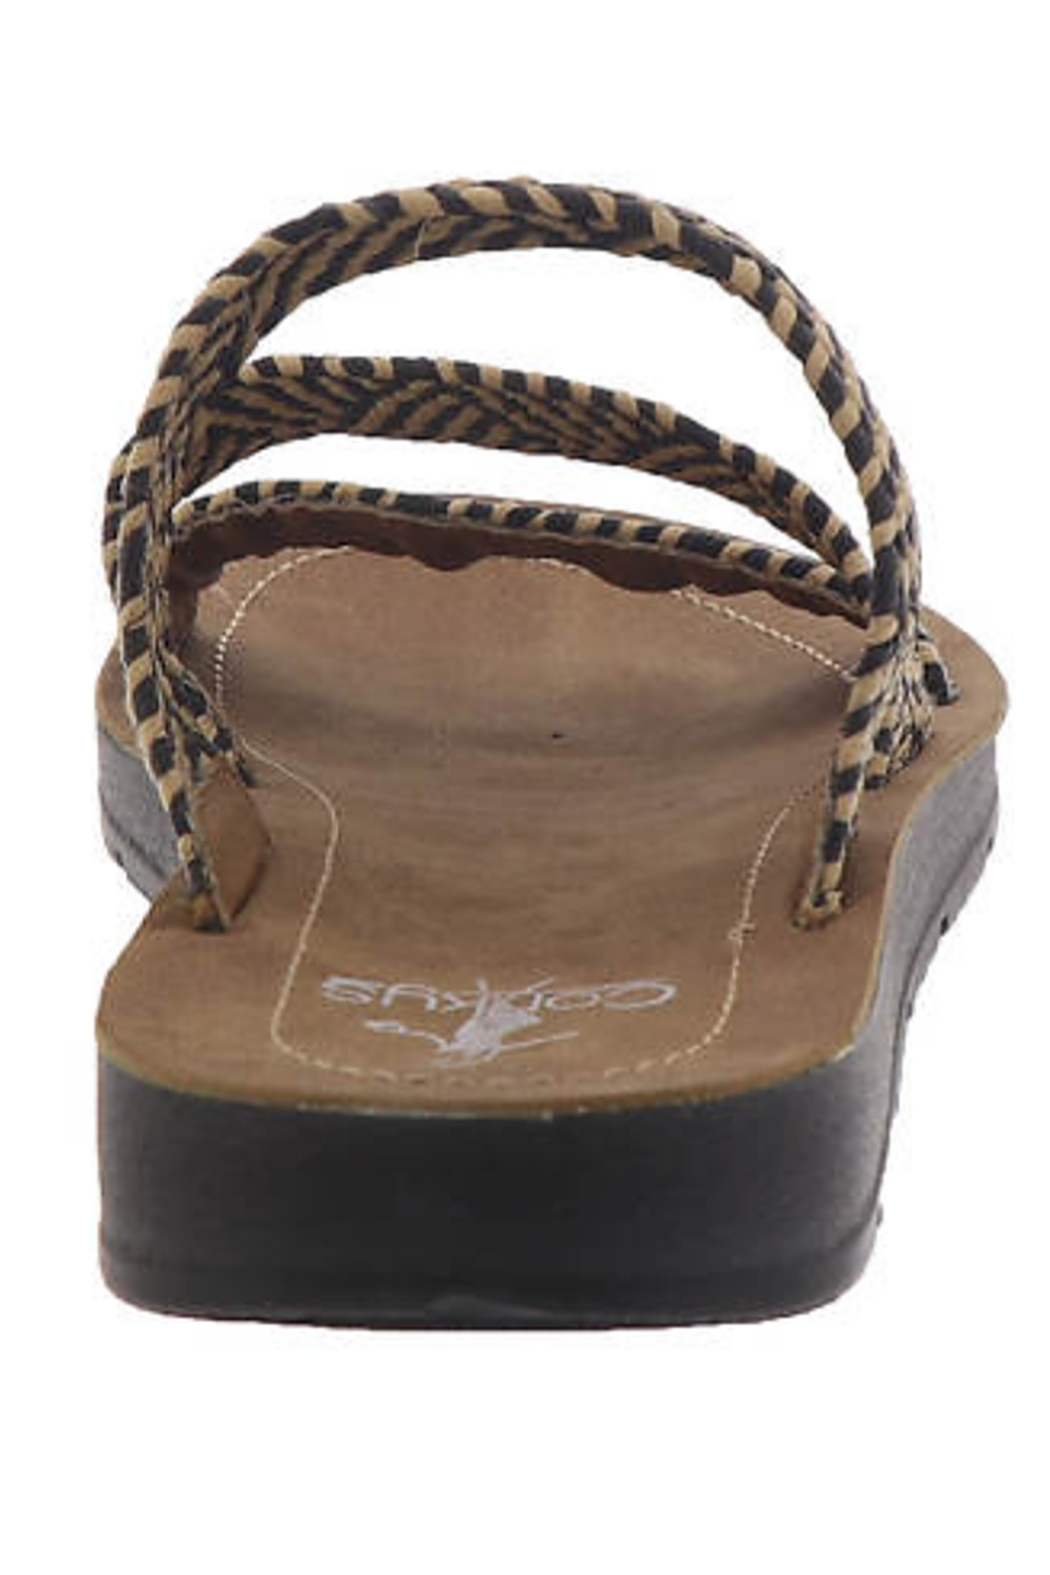 Corky's Shoes DAFNE WOVEN SANDAL - Back Cropped Image